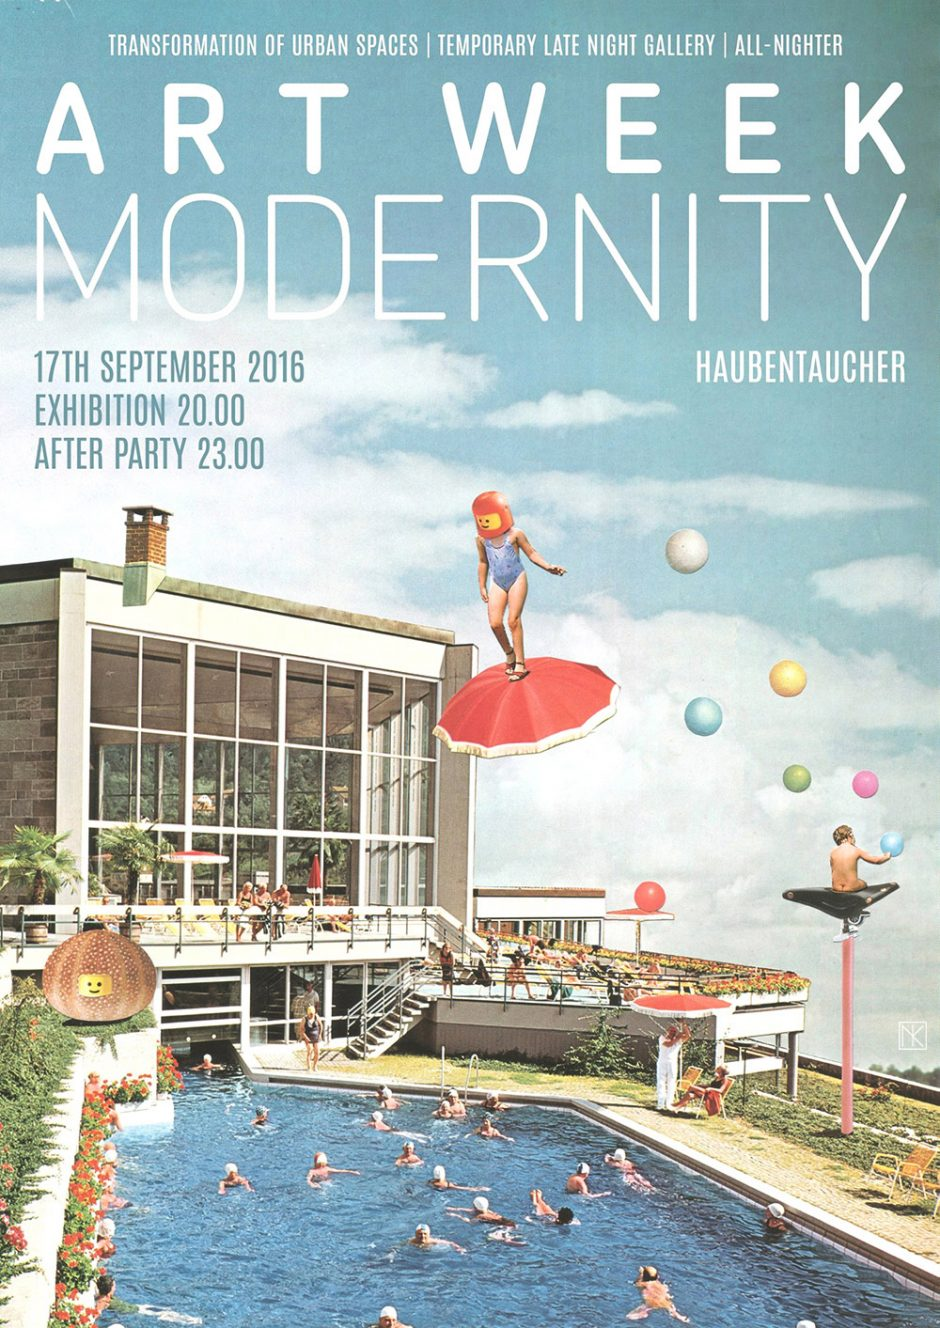 ARTWEEK Modernity (Poster):  Poster design created for this year's event »Modernity« at Haubentaucher during the Art Week in Berlin. I've customized the collage a bit for use on the internet. (Text by Shoxxx)